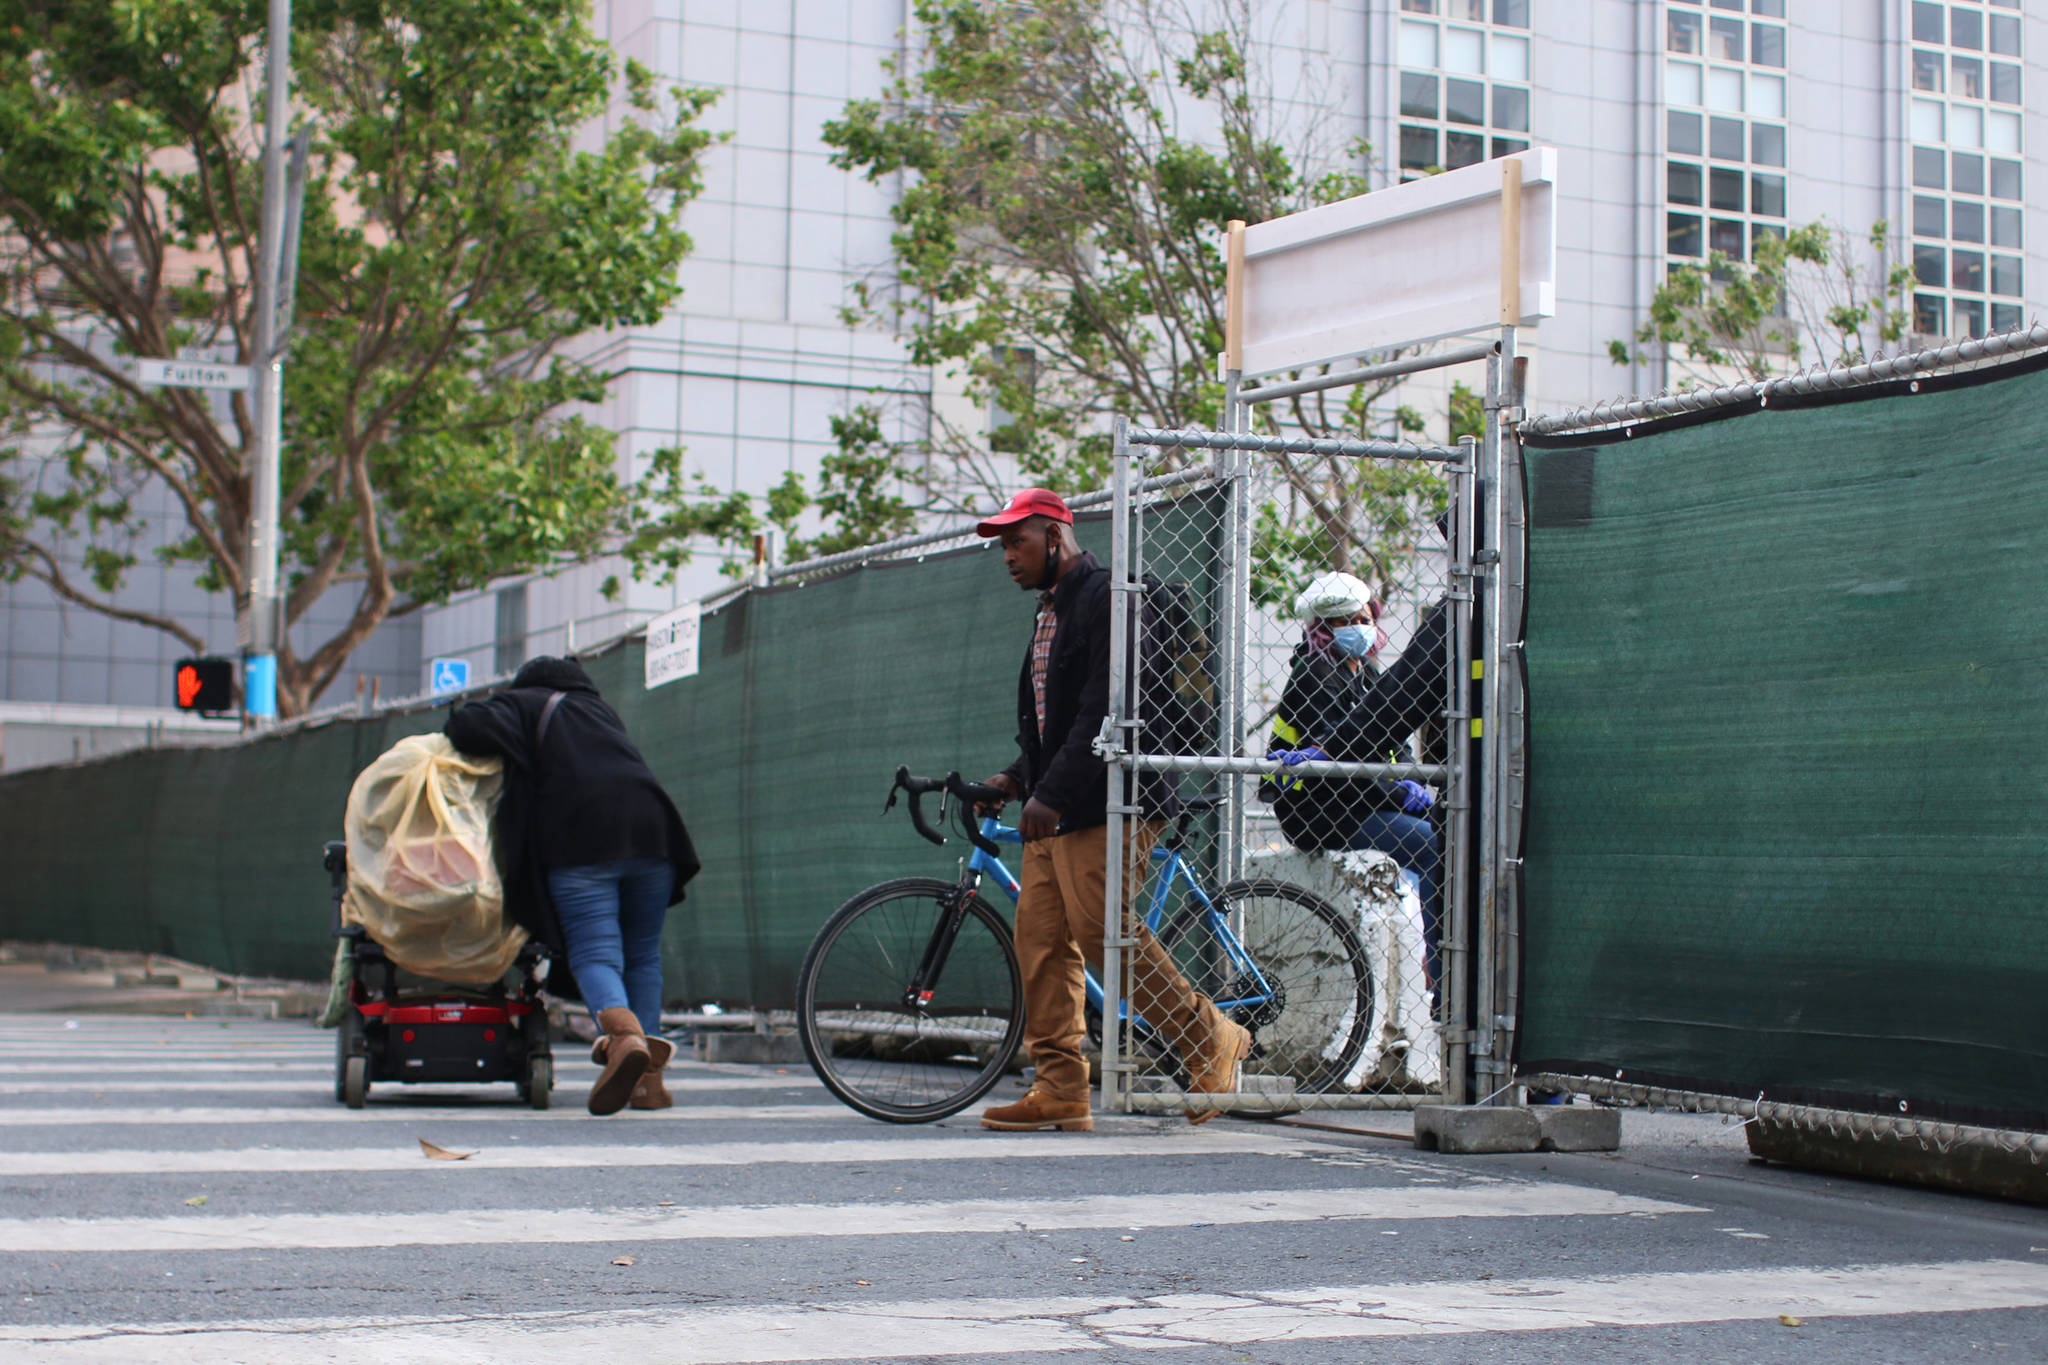 The camping site is surrounded by a chain-link fence and only those staying there are allowed inside. (Corey Browning/Special to the S.F. Examiner)